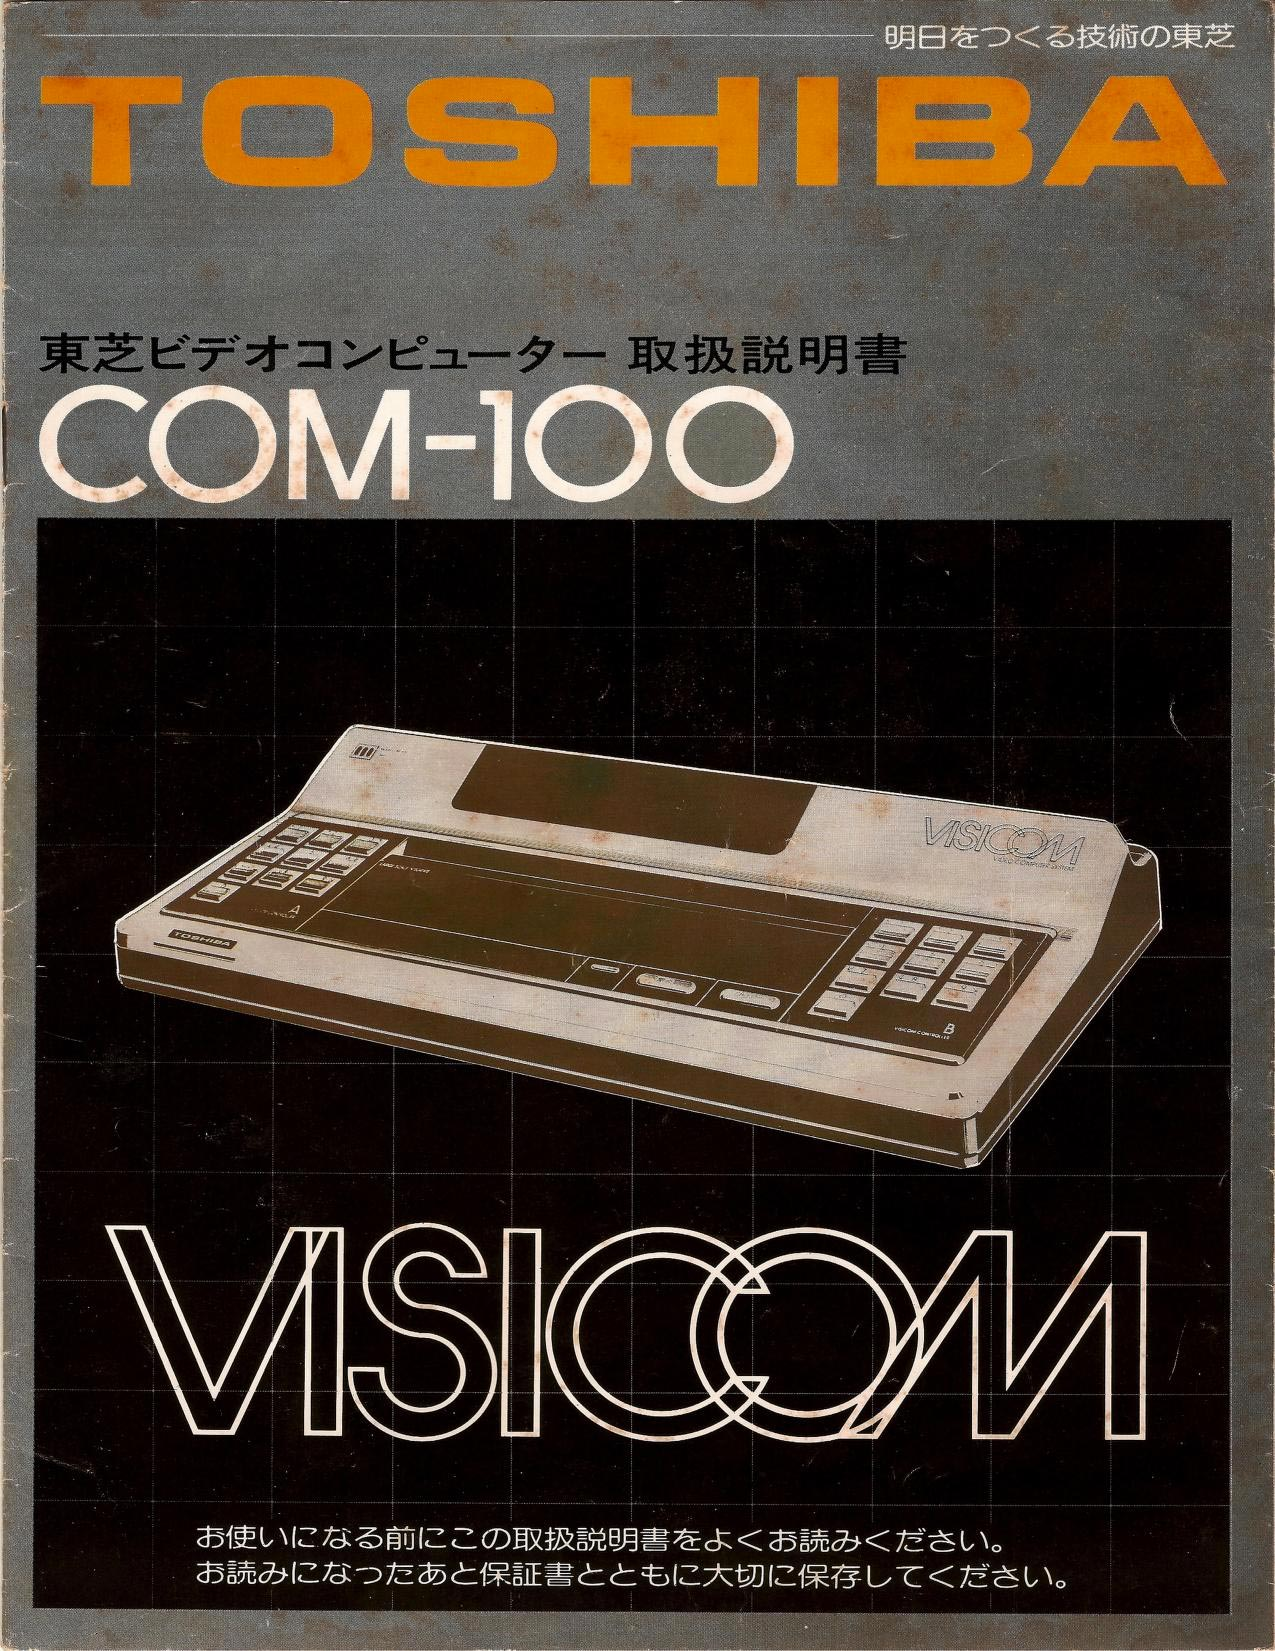 Visicom, a home video game console by Toshiba